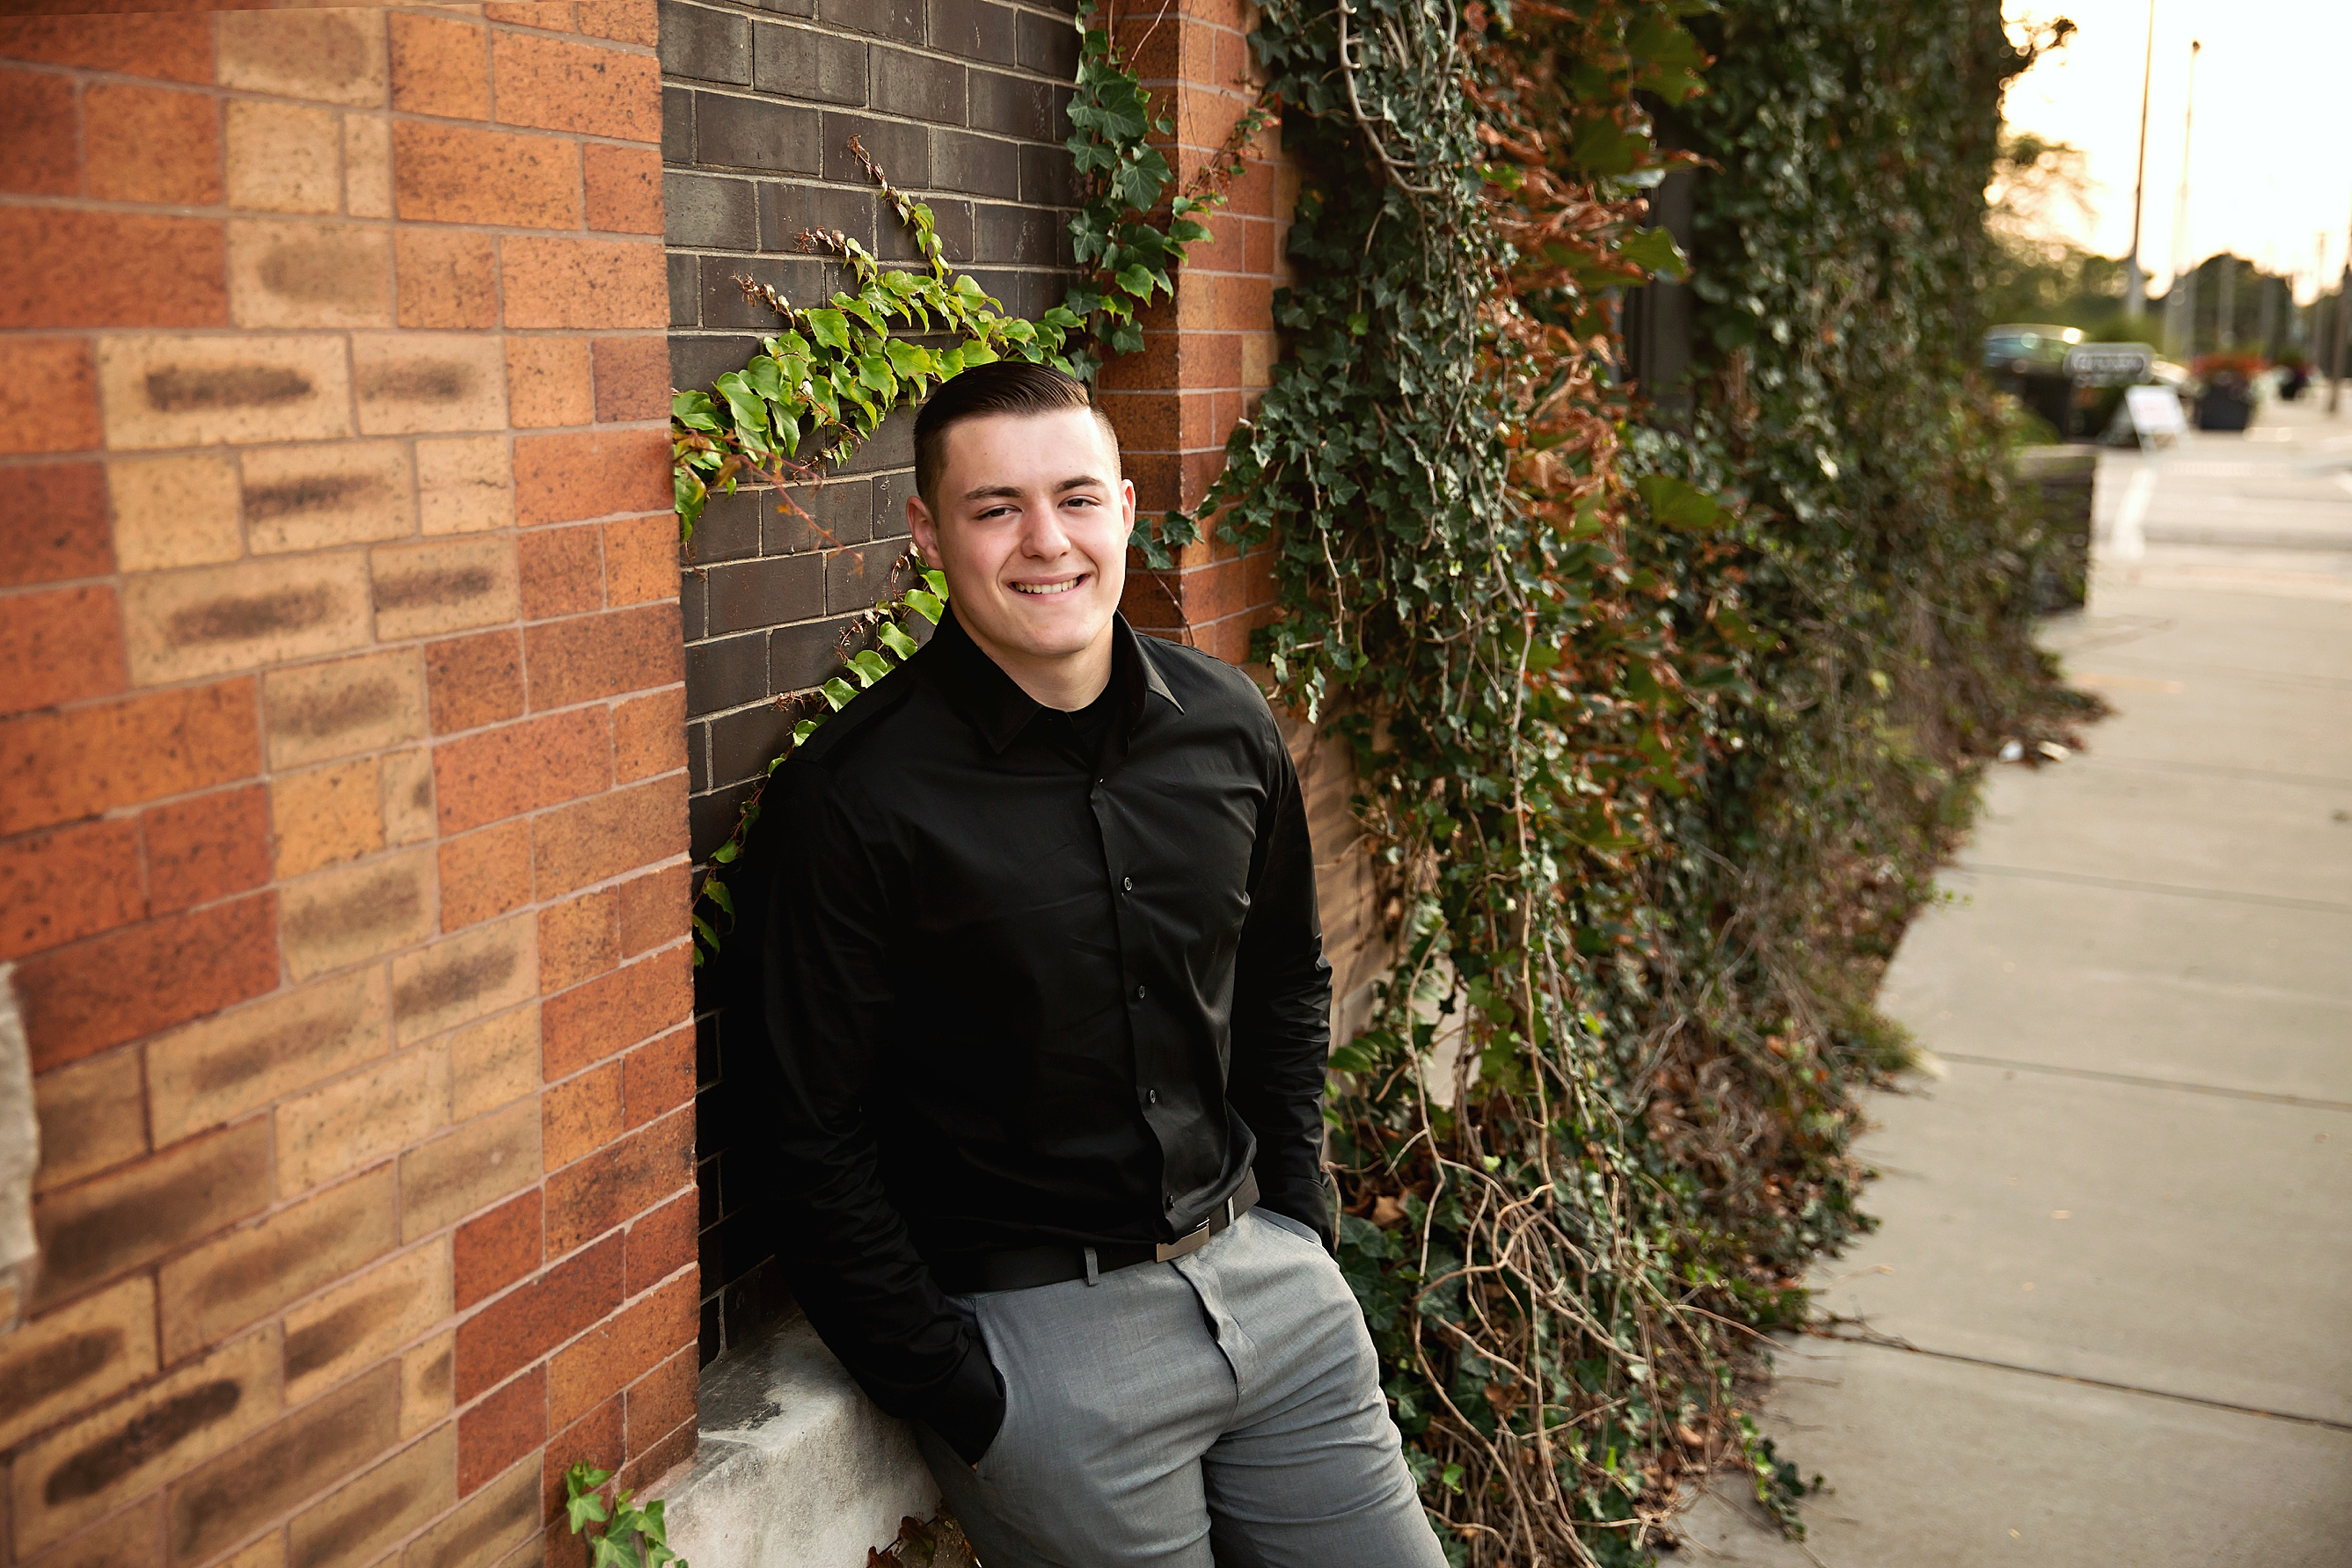 Normal IL Community High School Senior Photographer | Chandi Kesler_0090.jpg